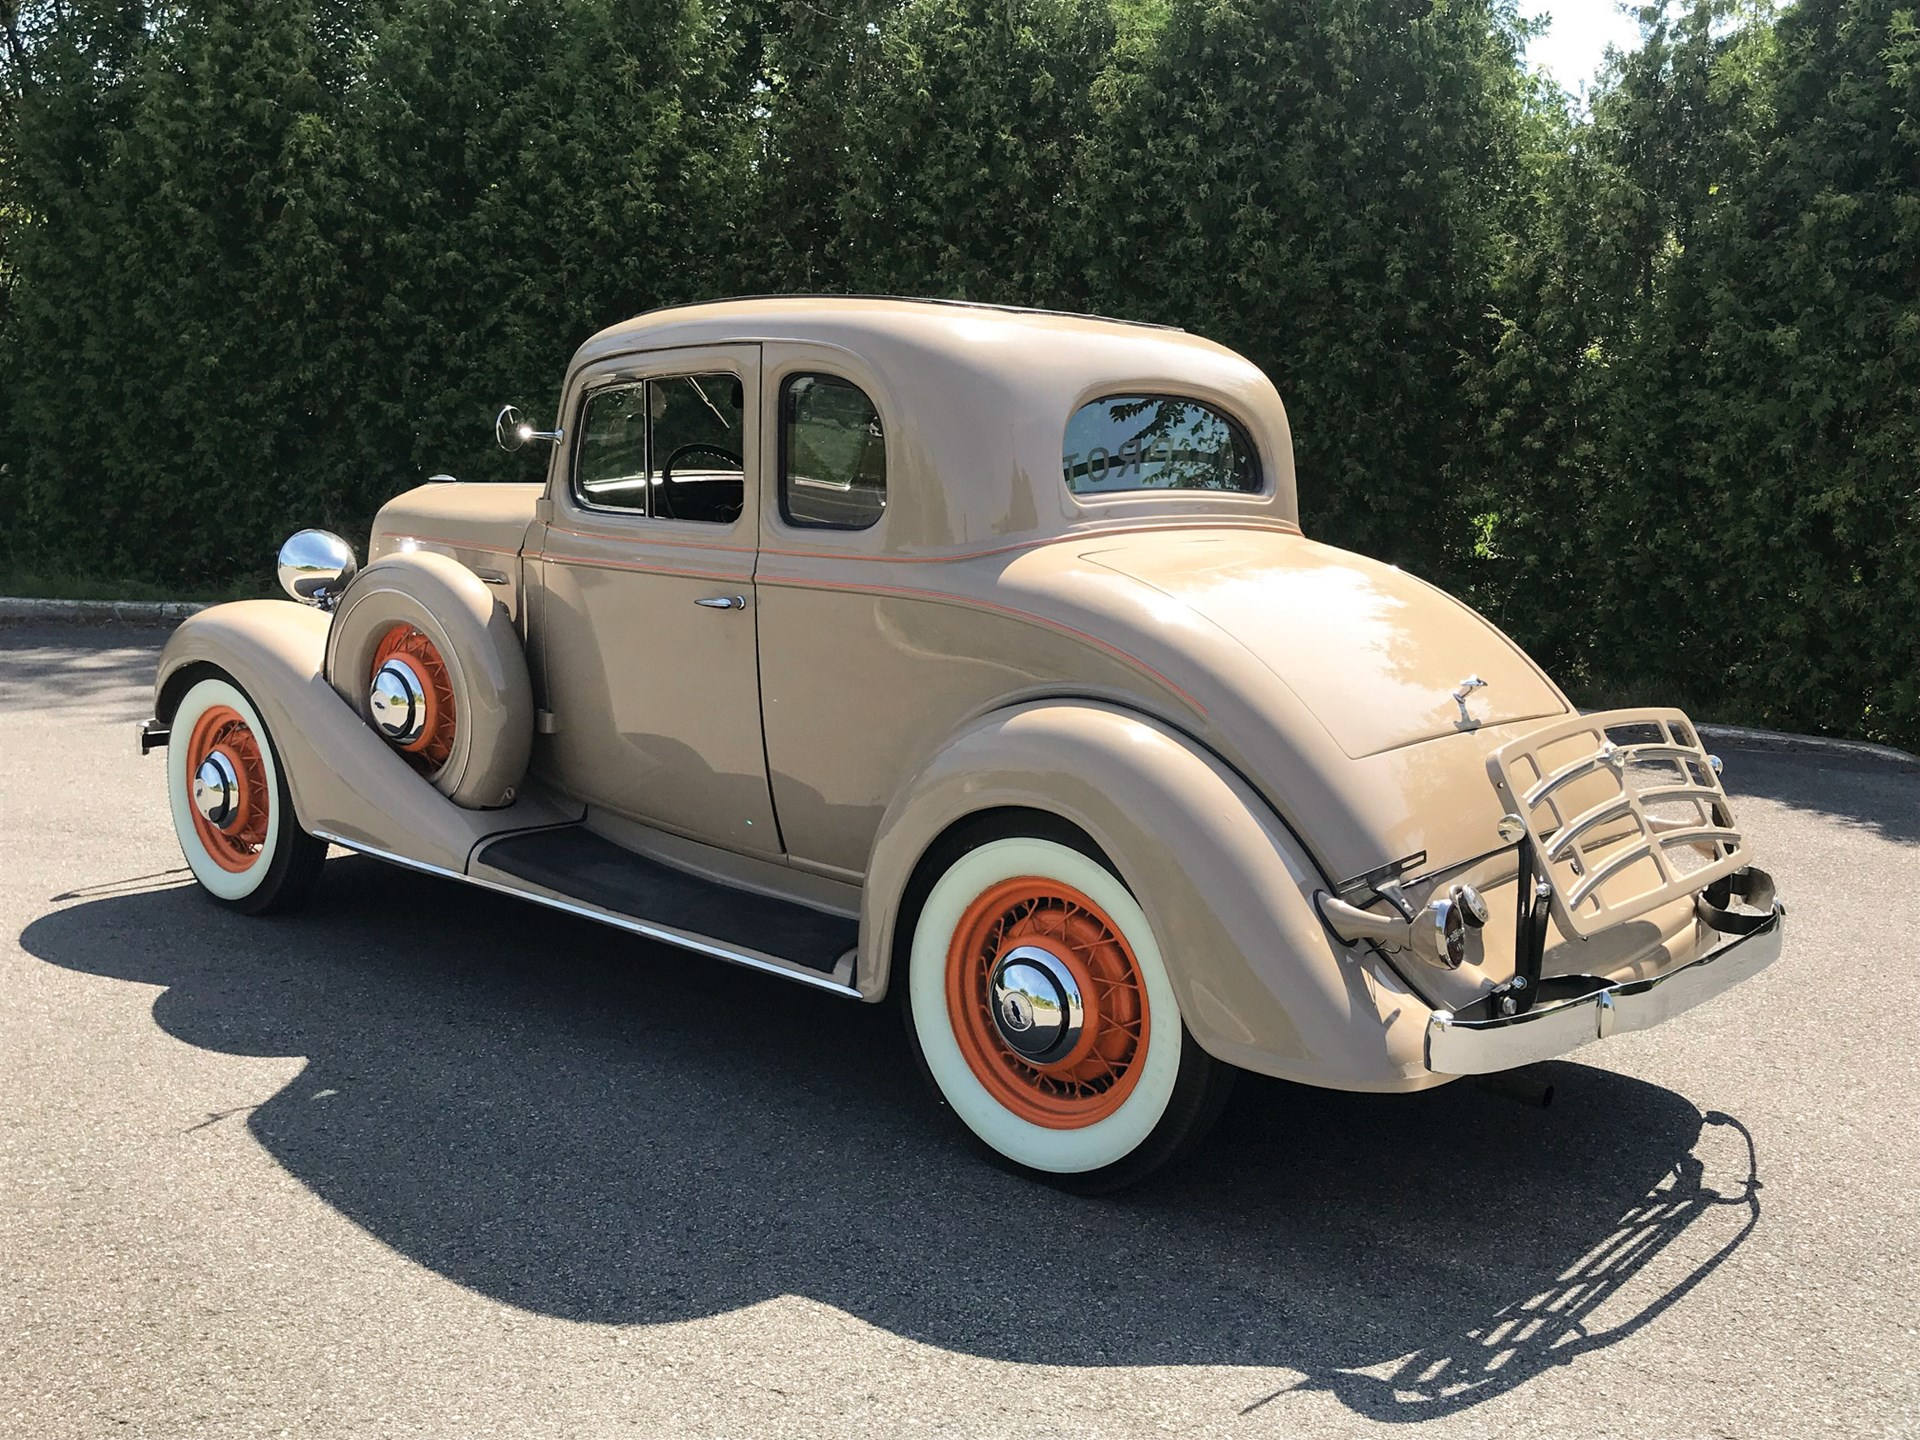 RM Sotheby's - 1934 Chevrolet Master Six Coupe | Auburn Fall 2019